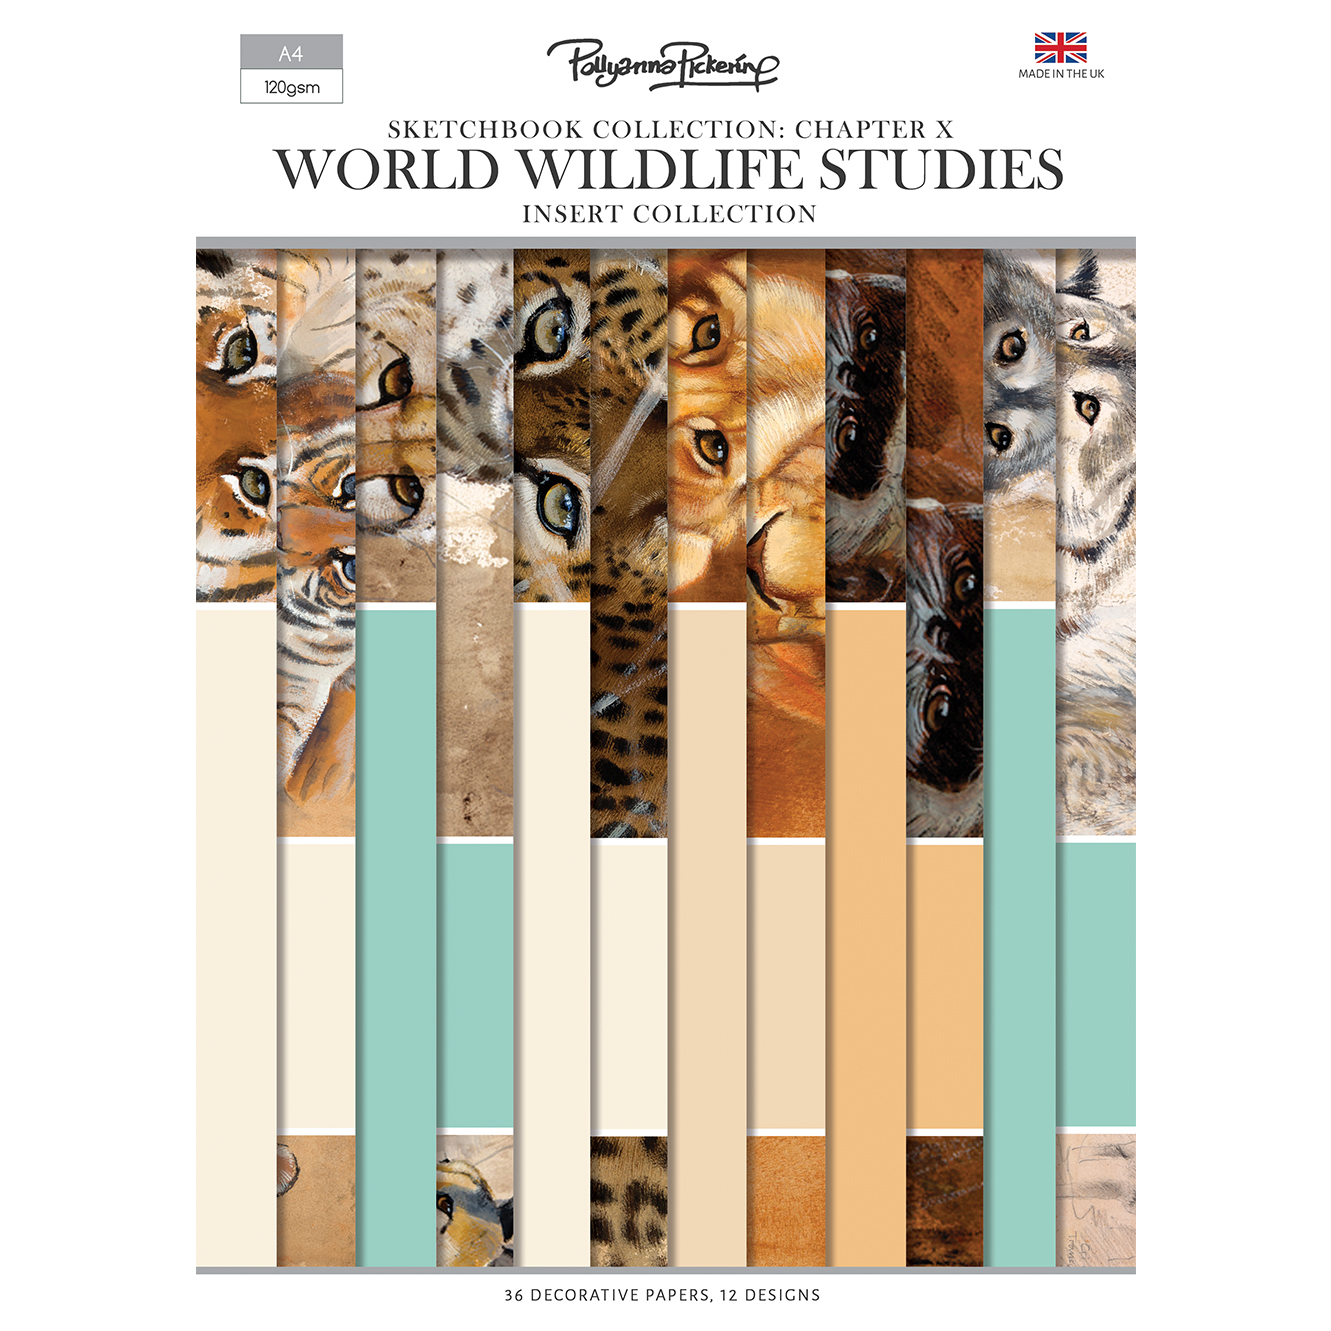 Pollyanna Pickering's Sketchbook Collection Chapter X World Wildlife Studies – Insert Collection